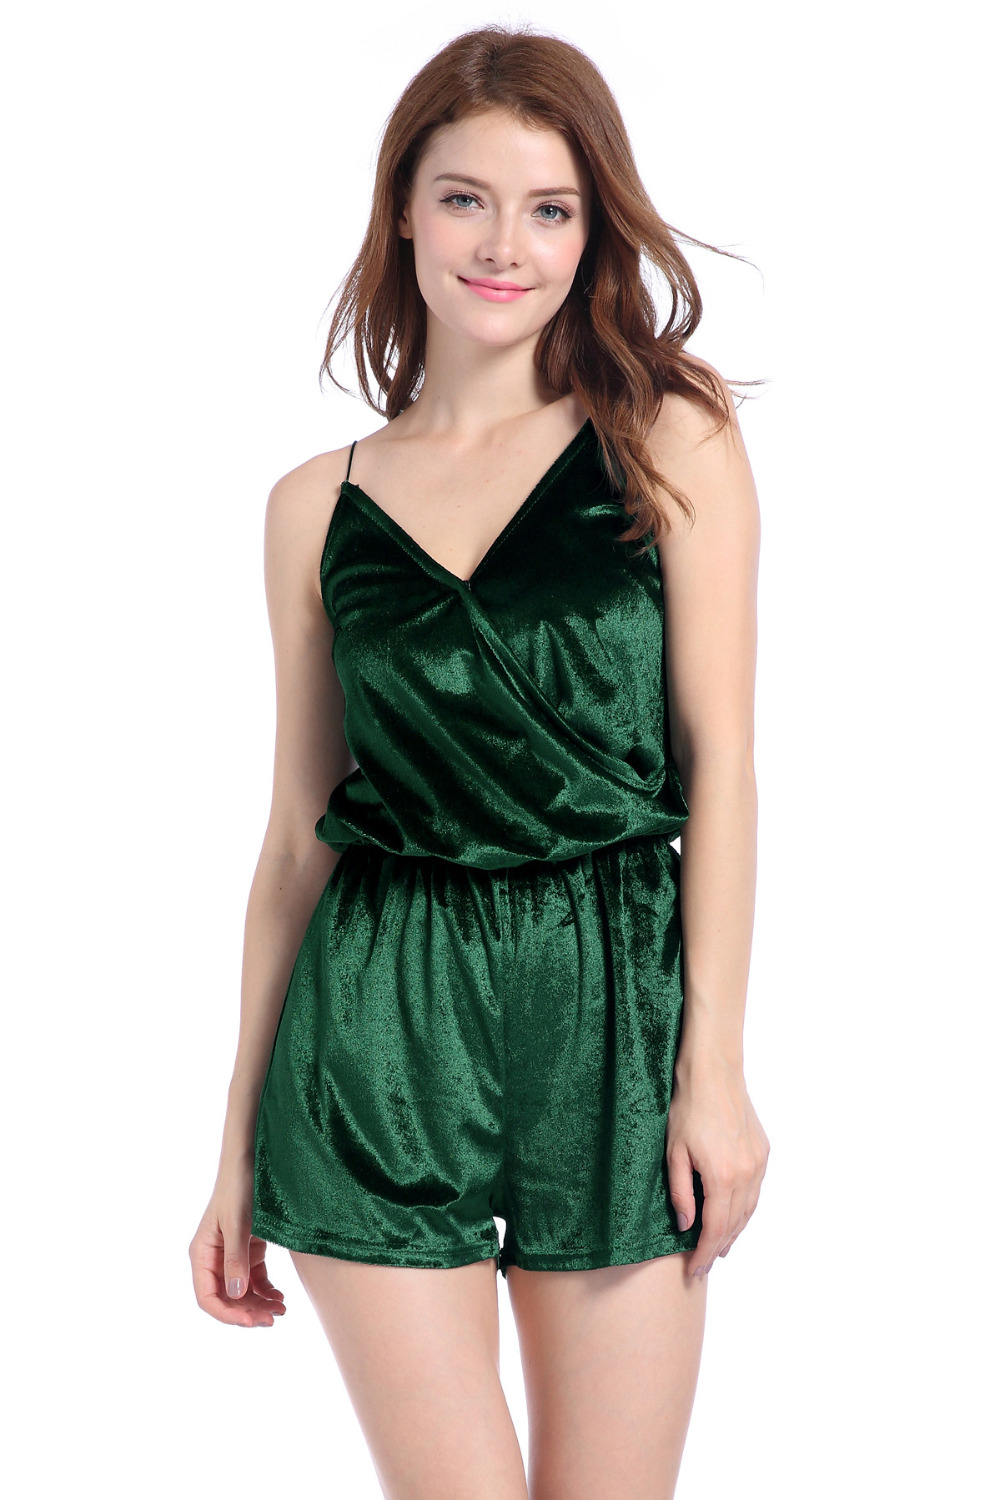 Fashion High Quality Plus Size Jumpsuits Women Sexy Backless Sleeveless Casual Playsuit Bodysuits Elegant Jumpsuits Women